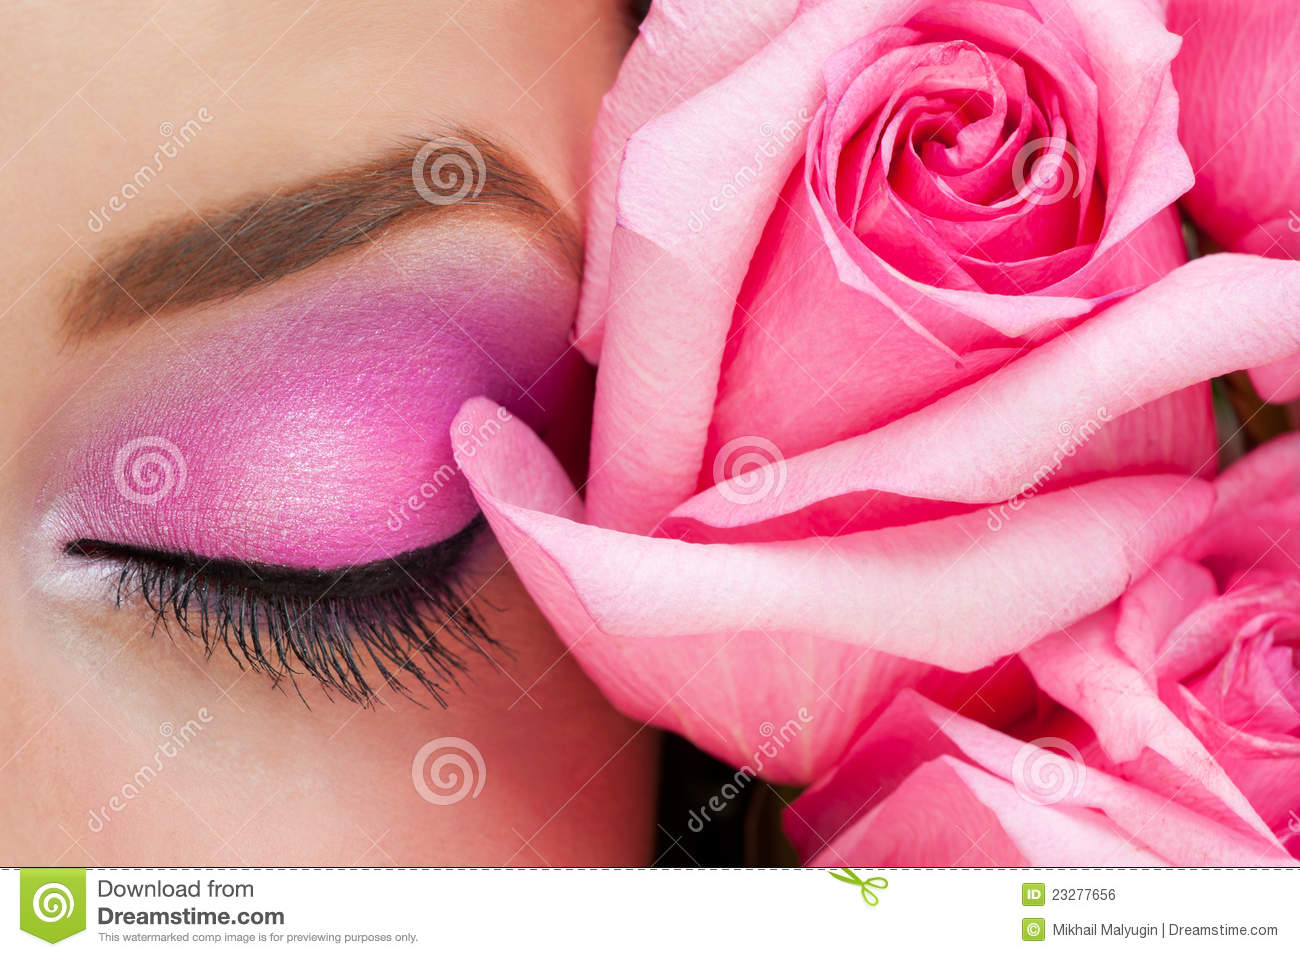 Woman eye with makeup and rose